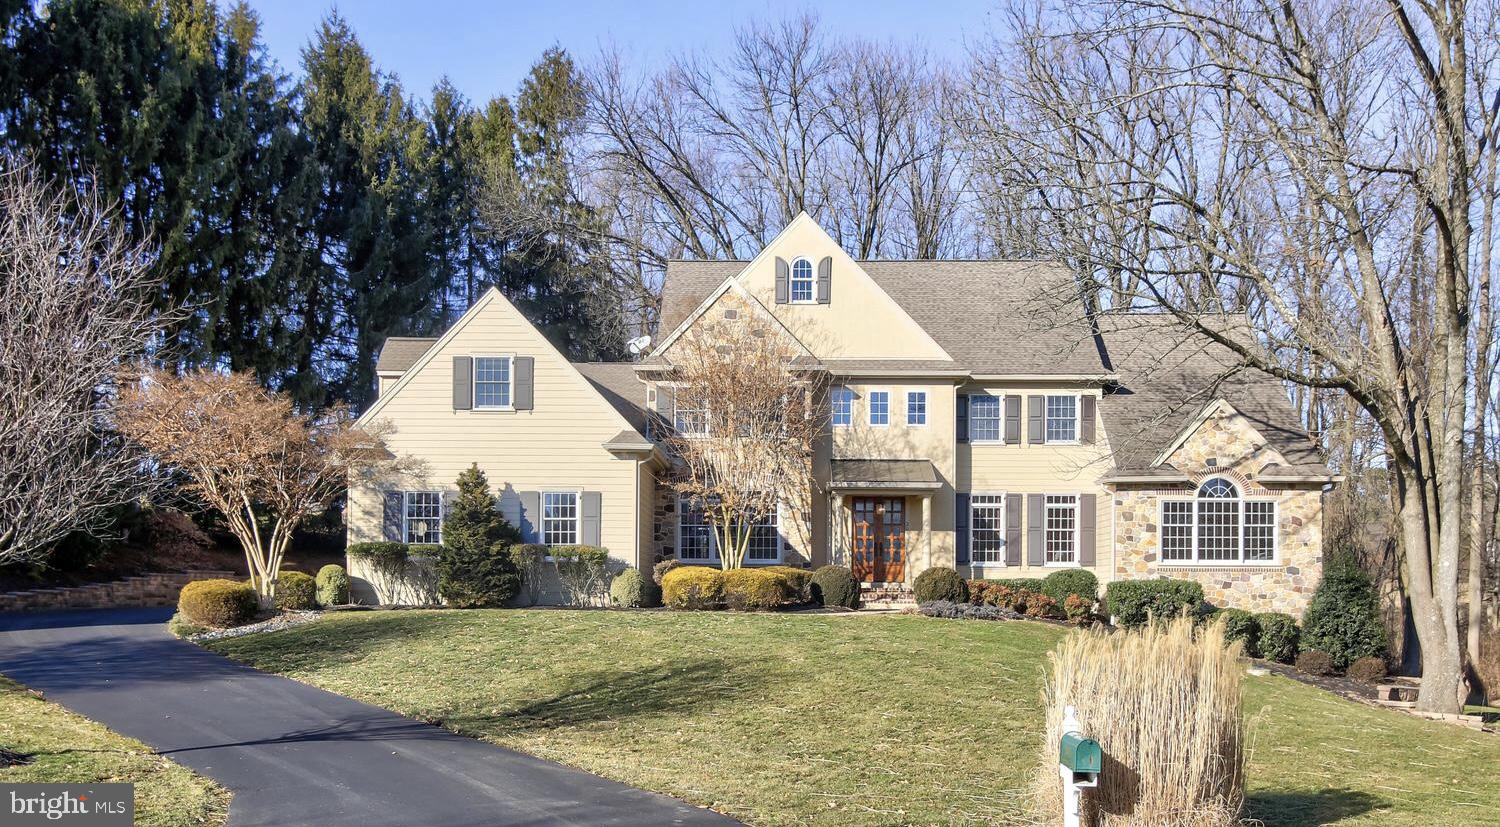 205 KIMBERWYCK WAY, KENNETT SQUARE, PA 19348